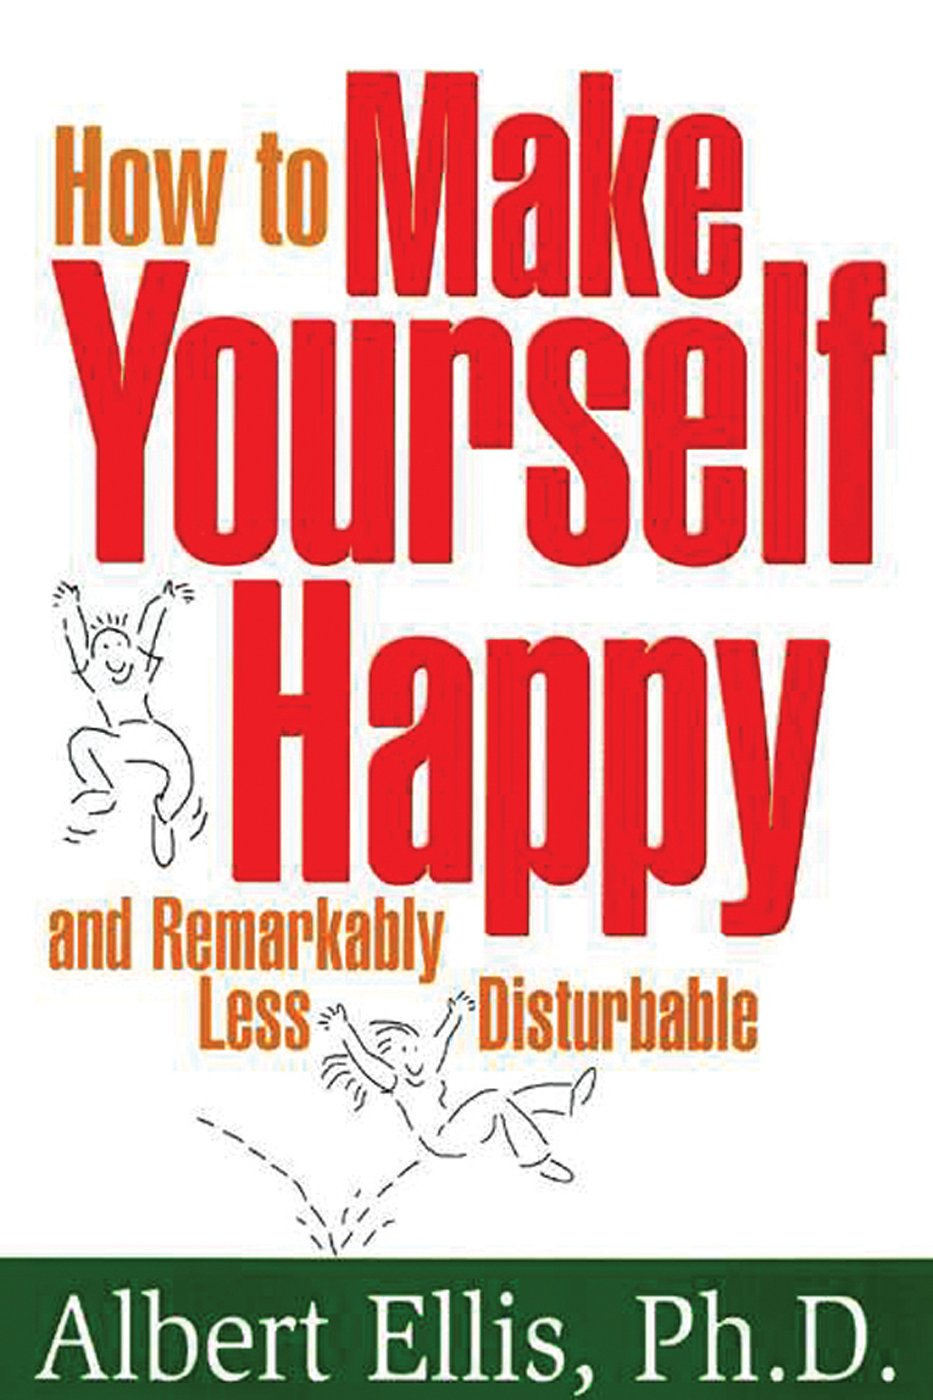 How To Make Yourself Happy: Amazon.es: Albert Ellis PhD: Libros en idiomas extranjeros